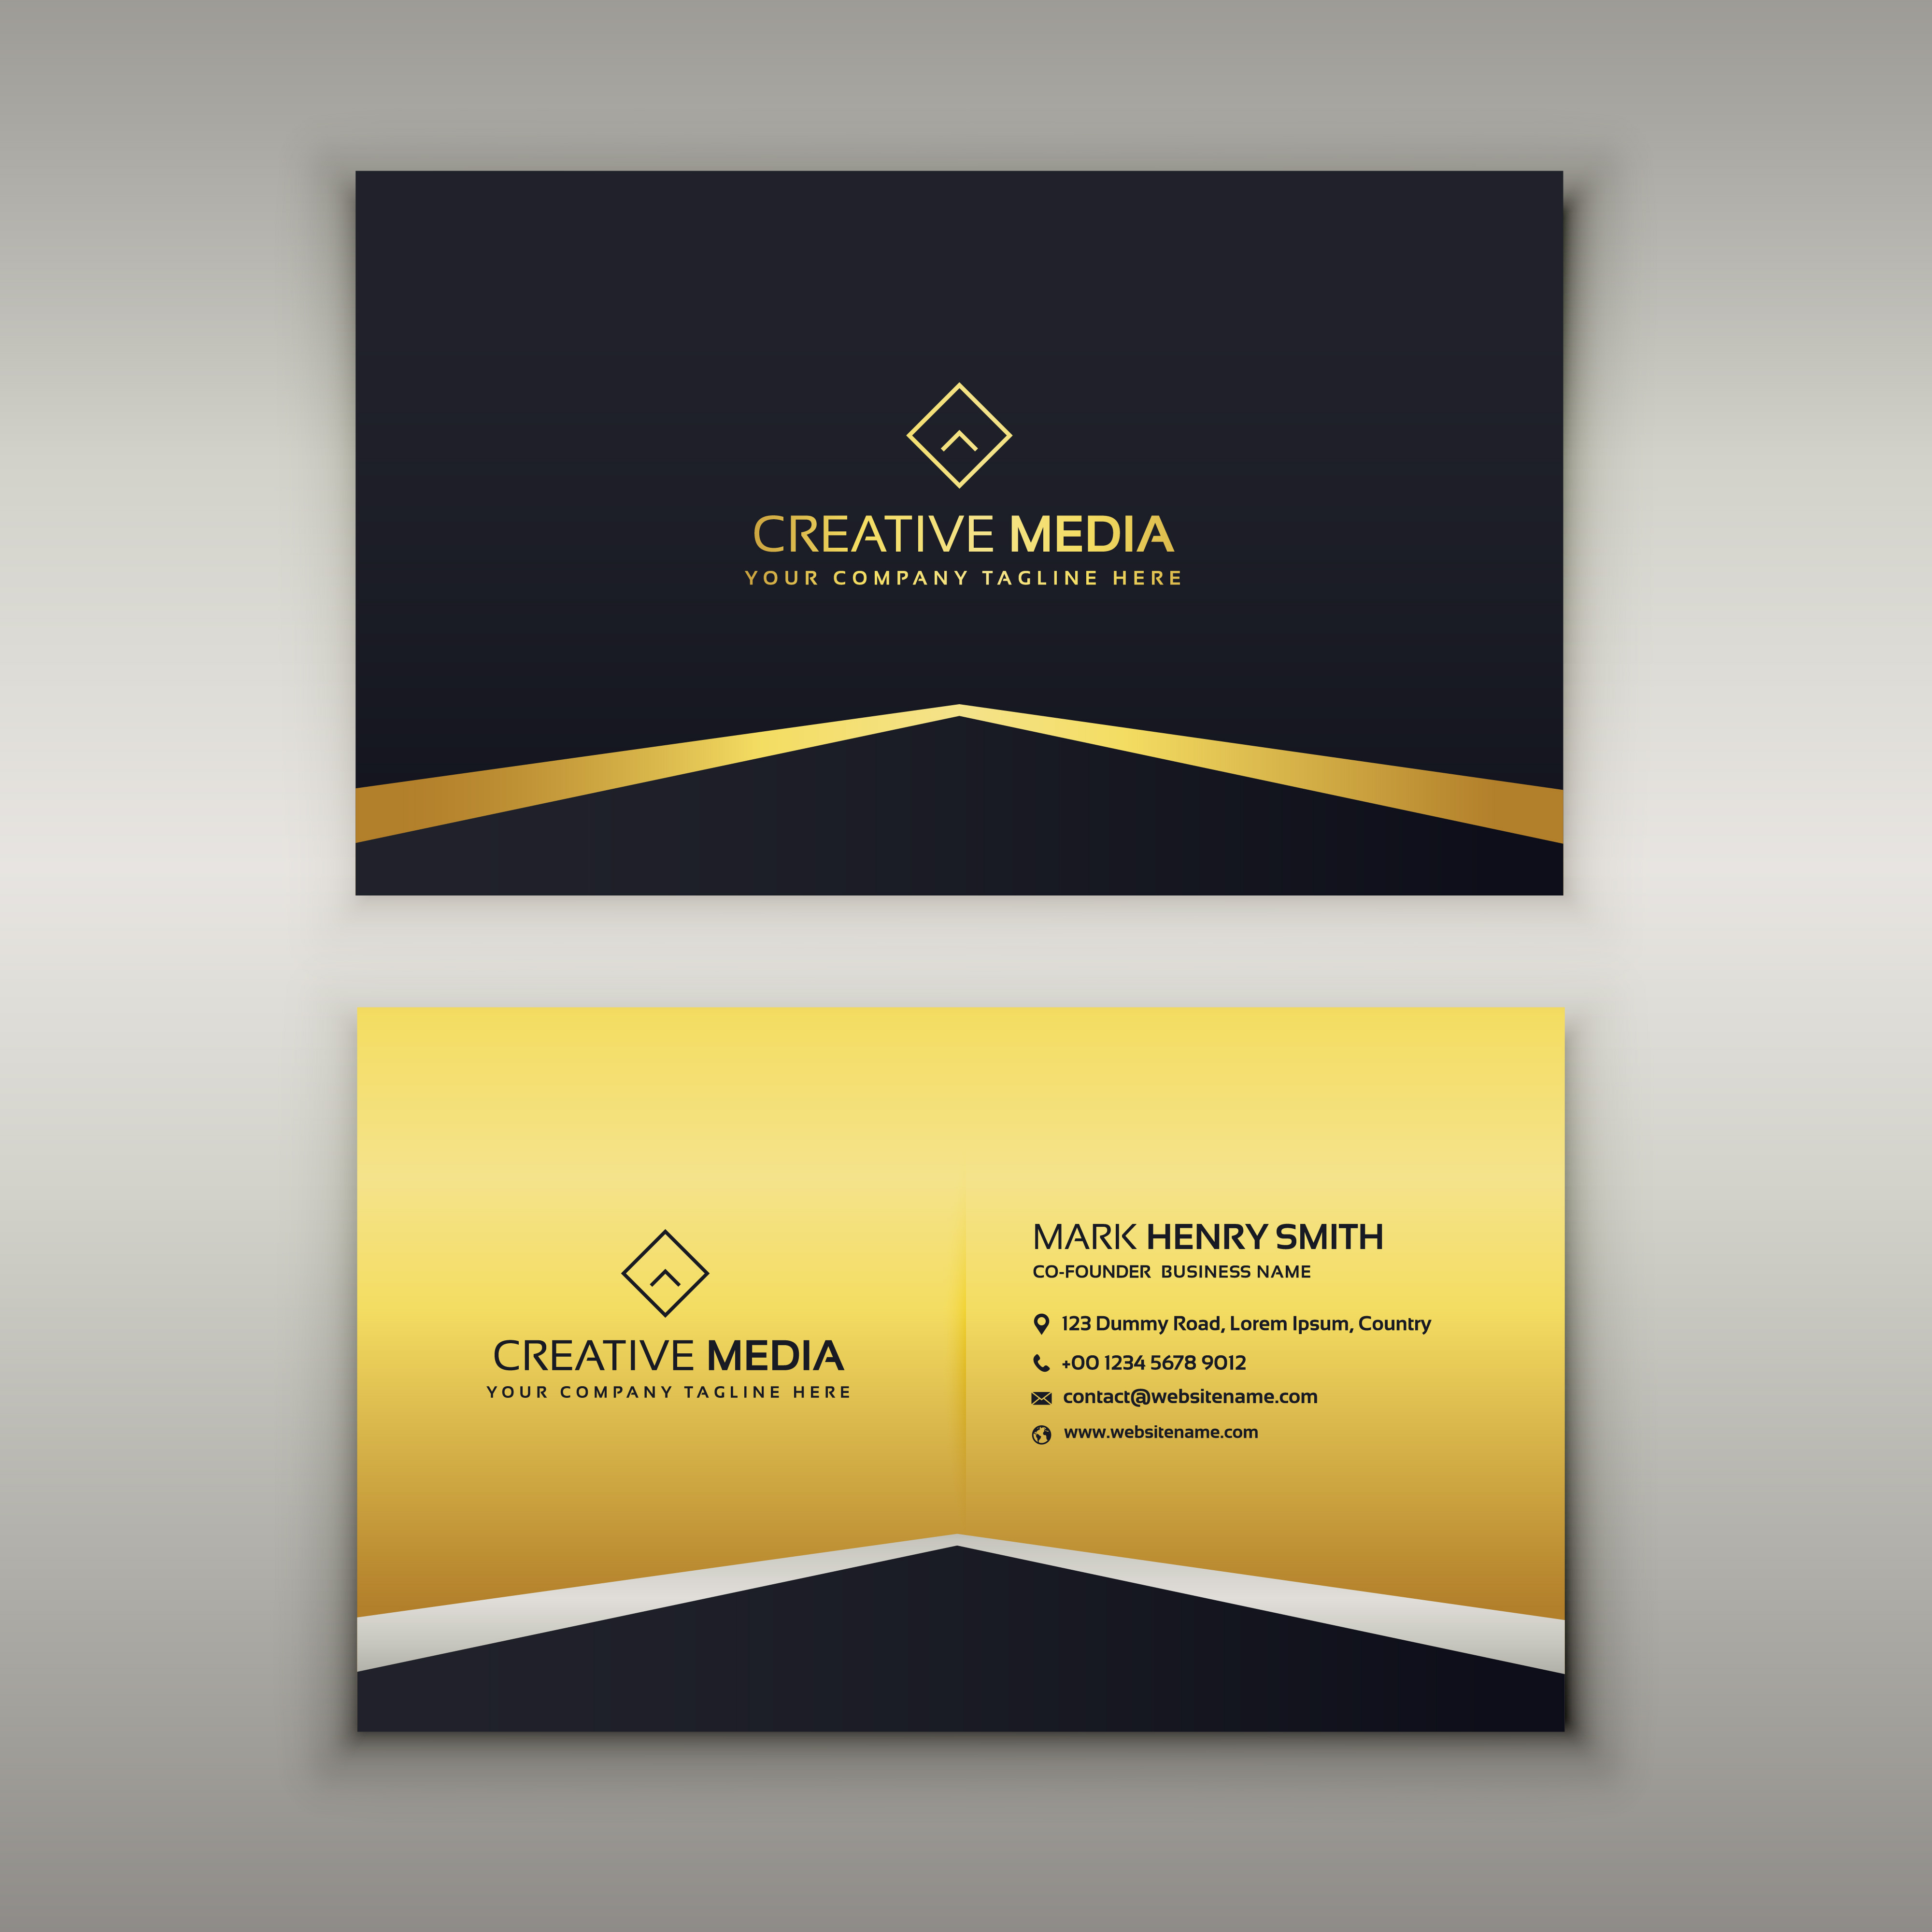 Luxury Business Card Design Template Download Free